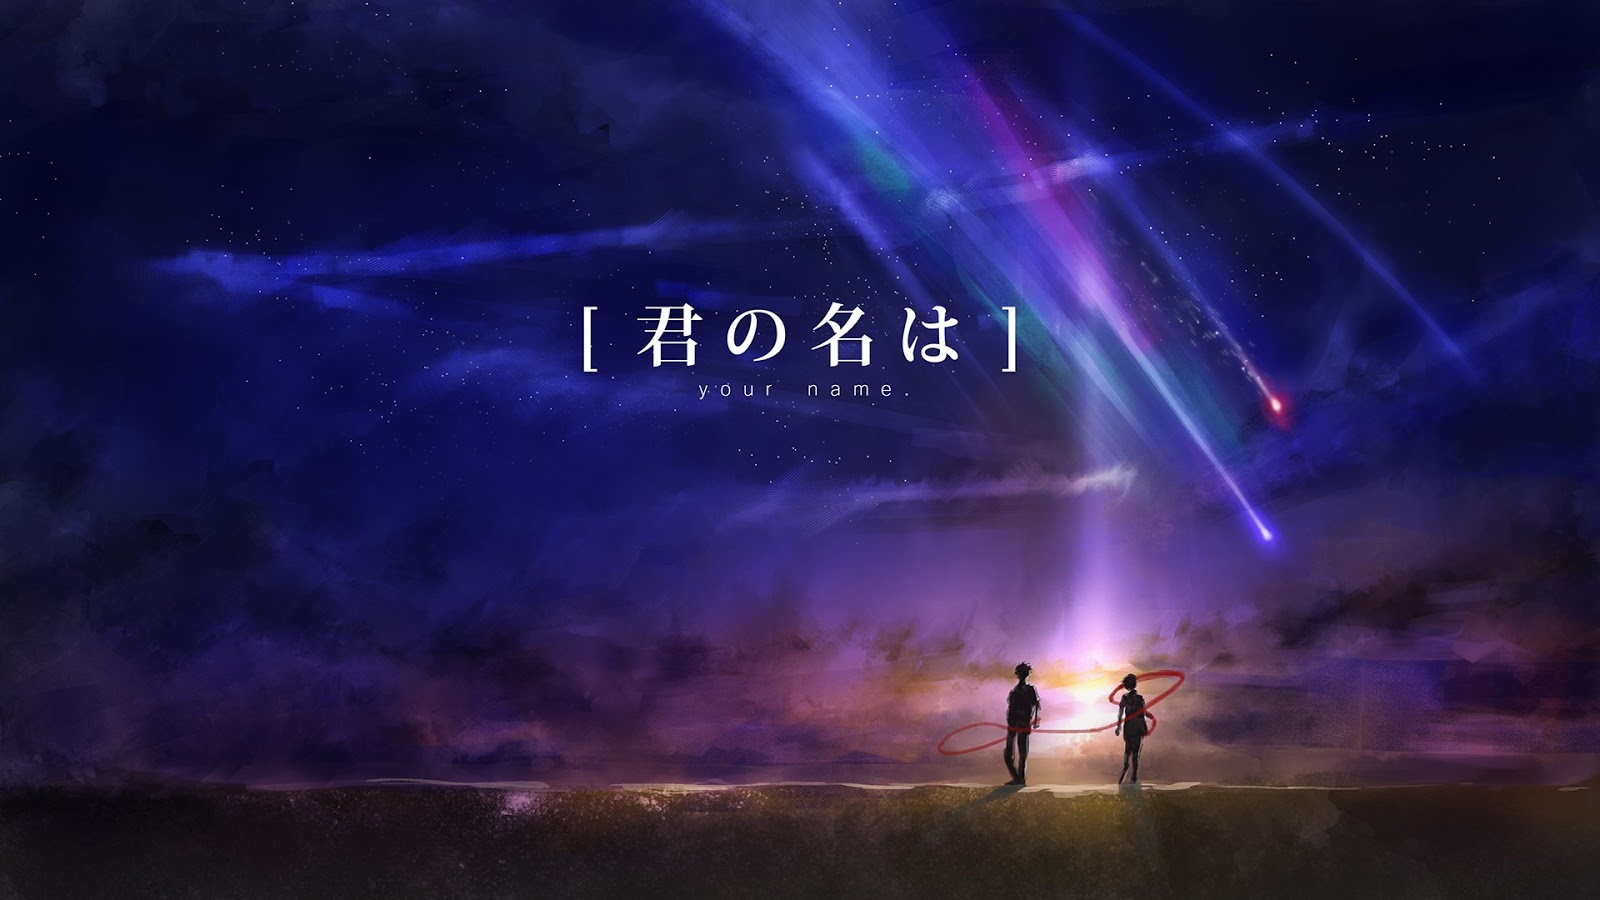 your name is full movie